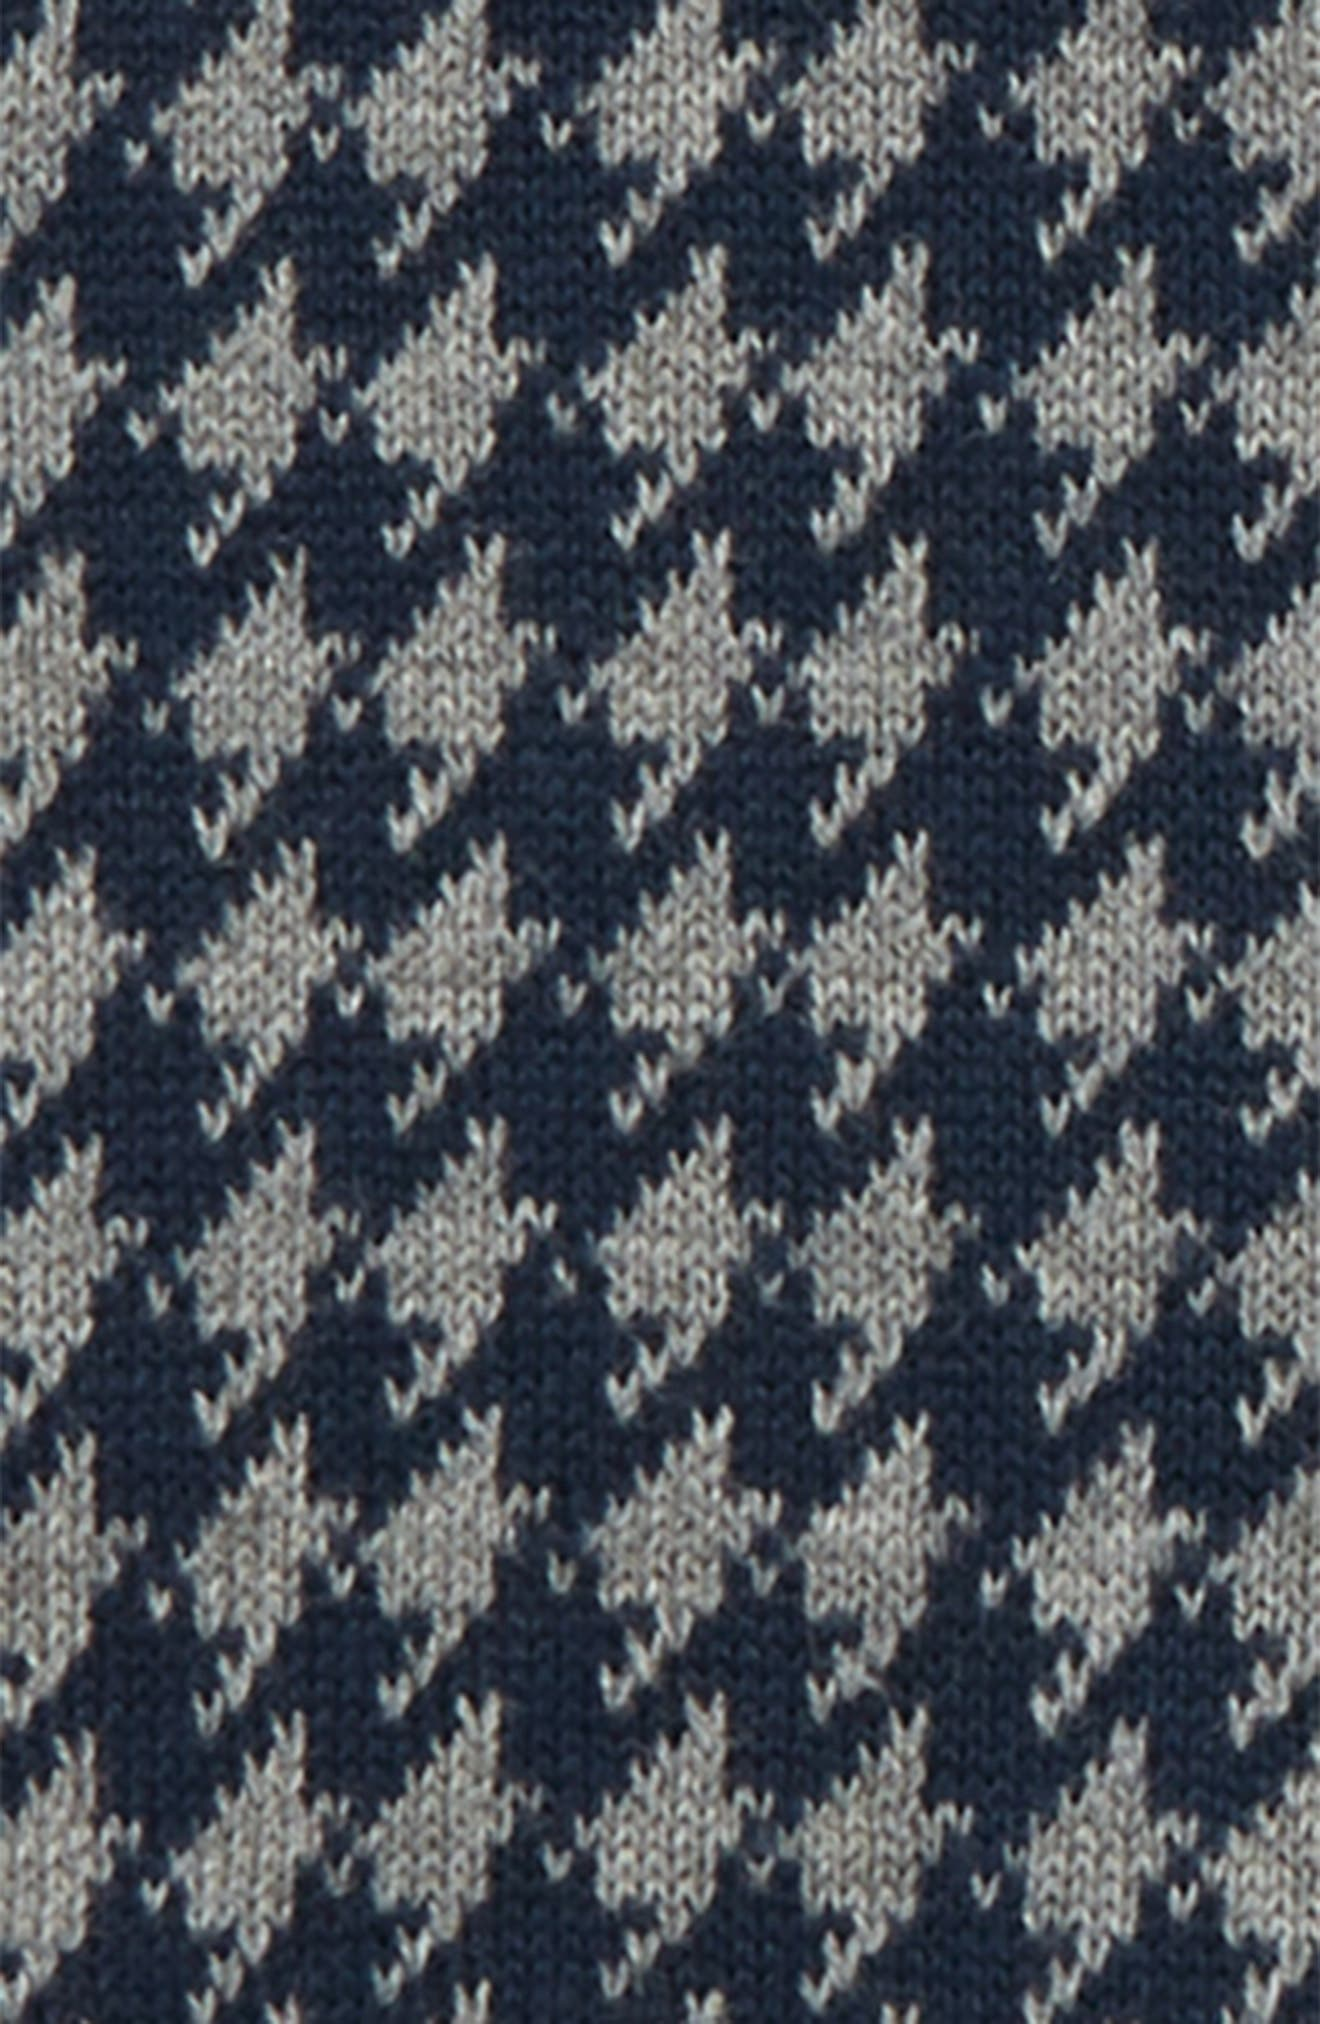 Houndstooth Cardigan,                             Alternate thumbnail 2, color,                             410